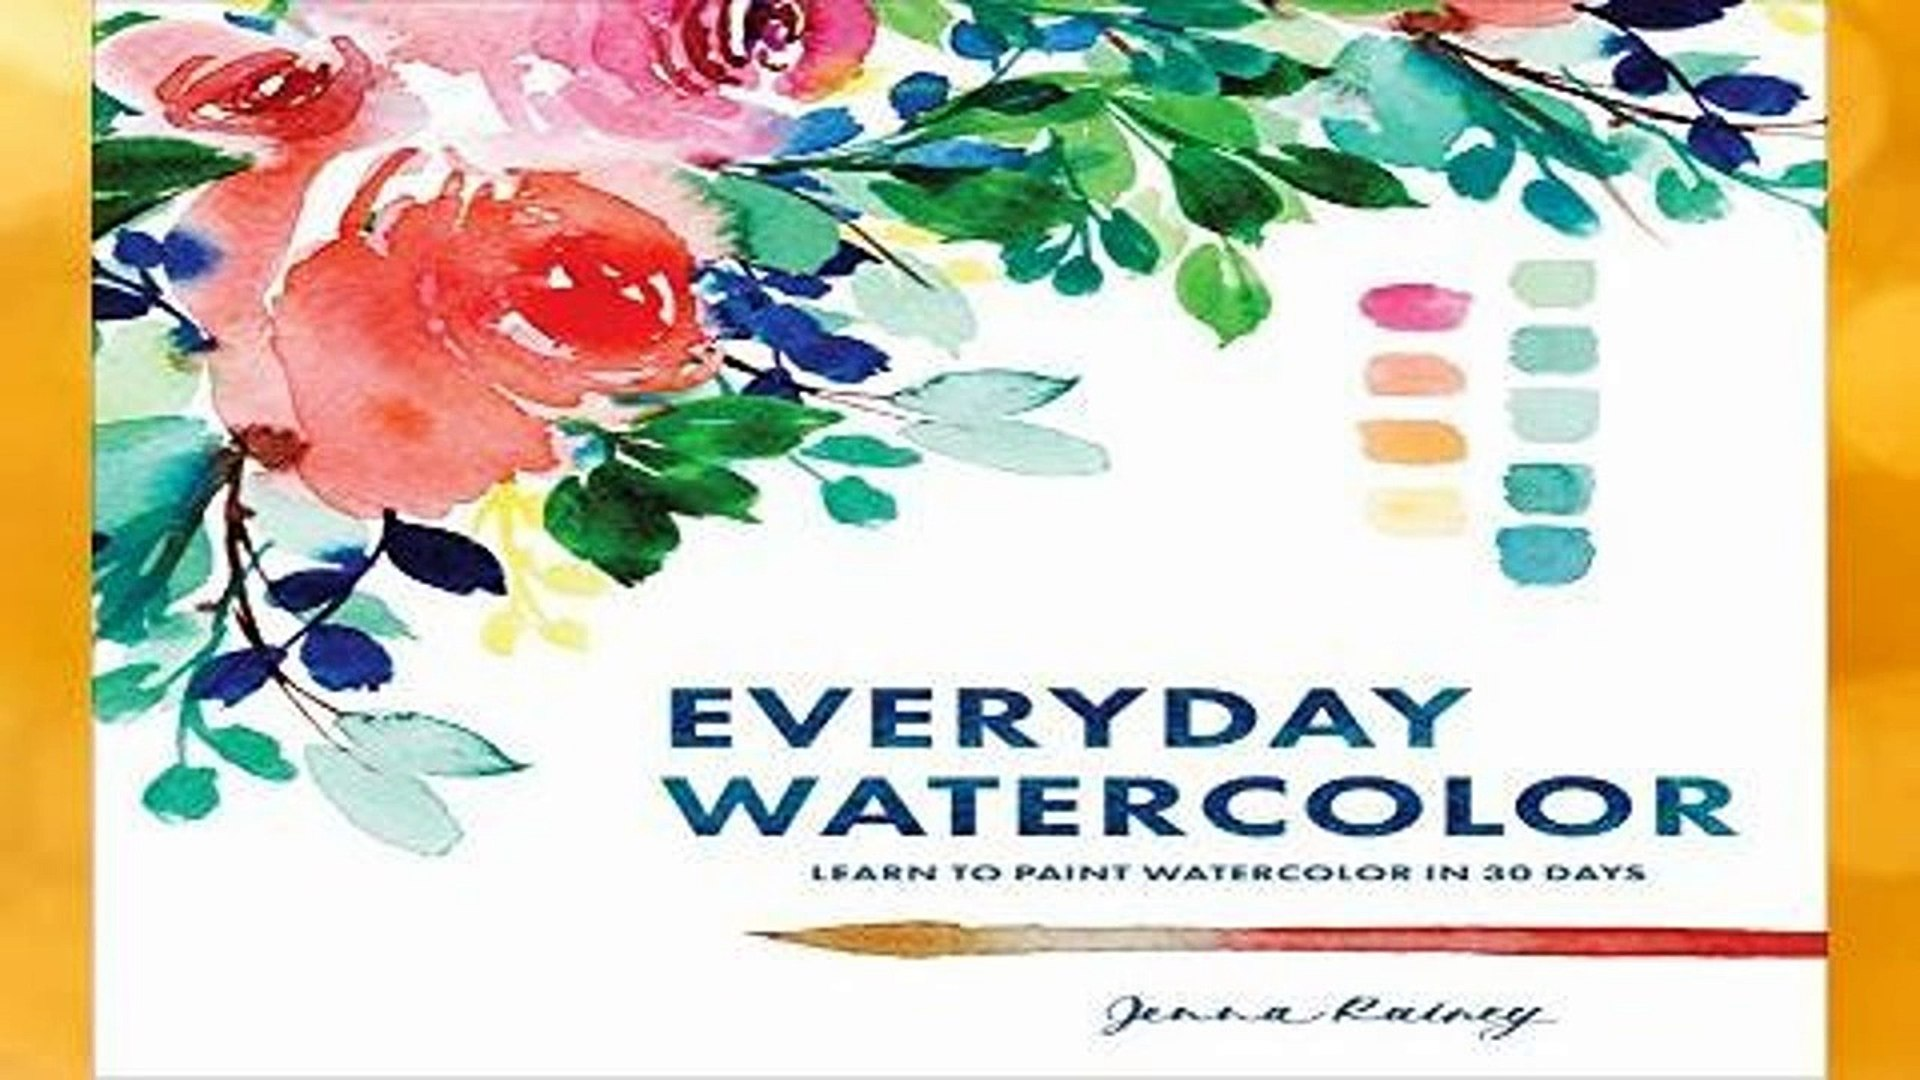 1920x1080 About For Books Everyday Watercolor Learn To Paint Watercolor In